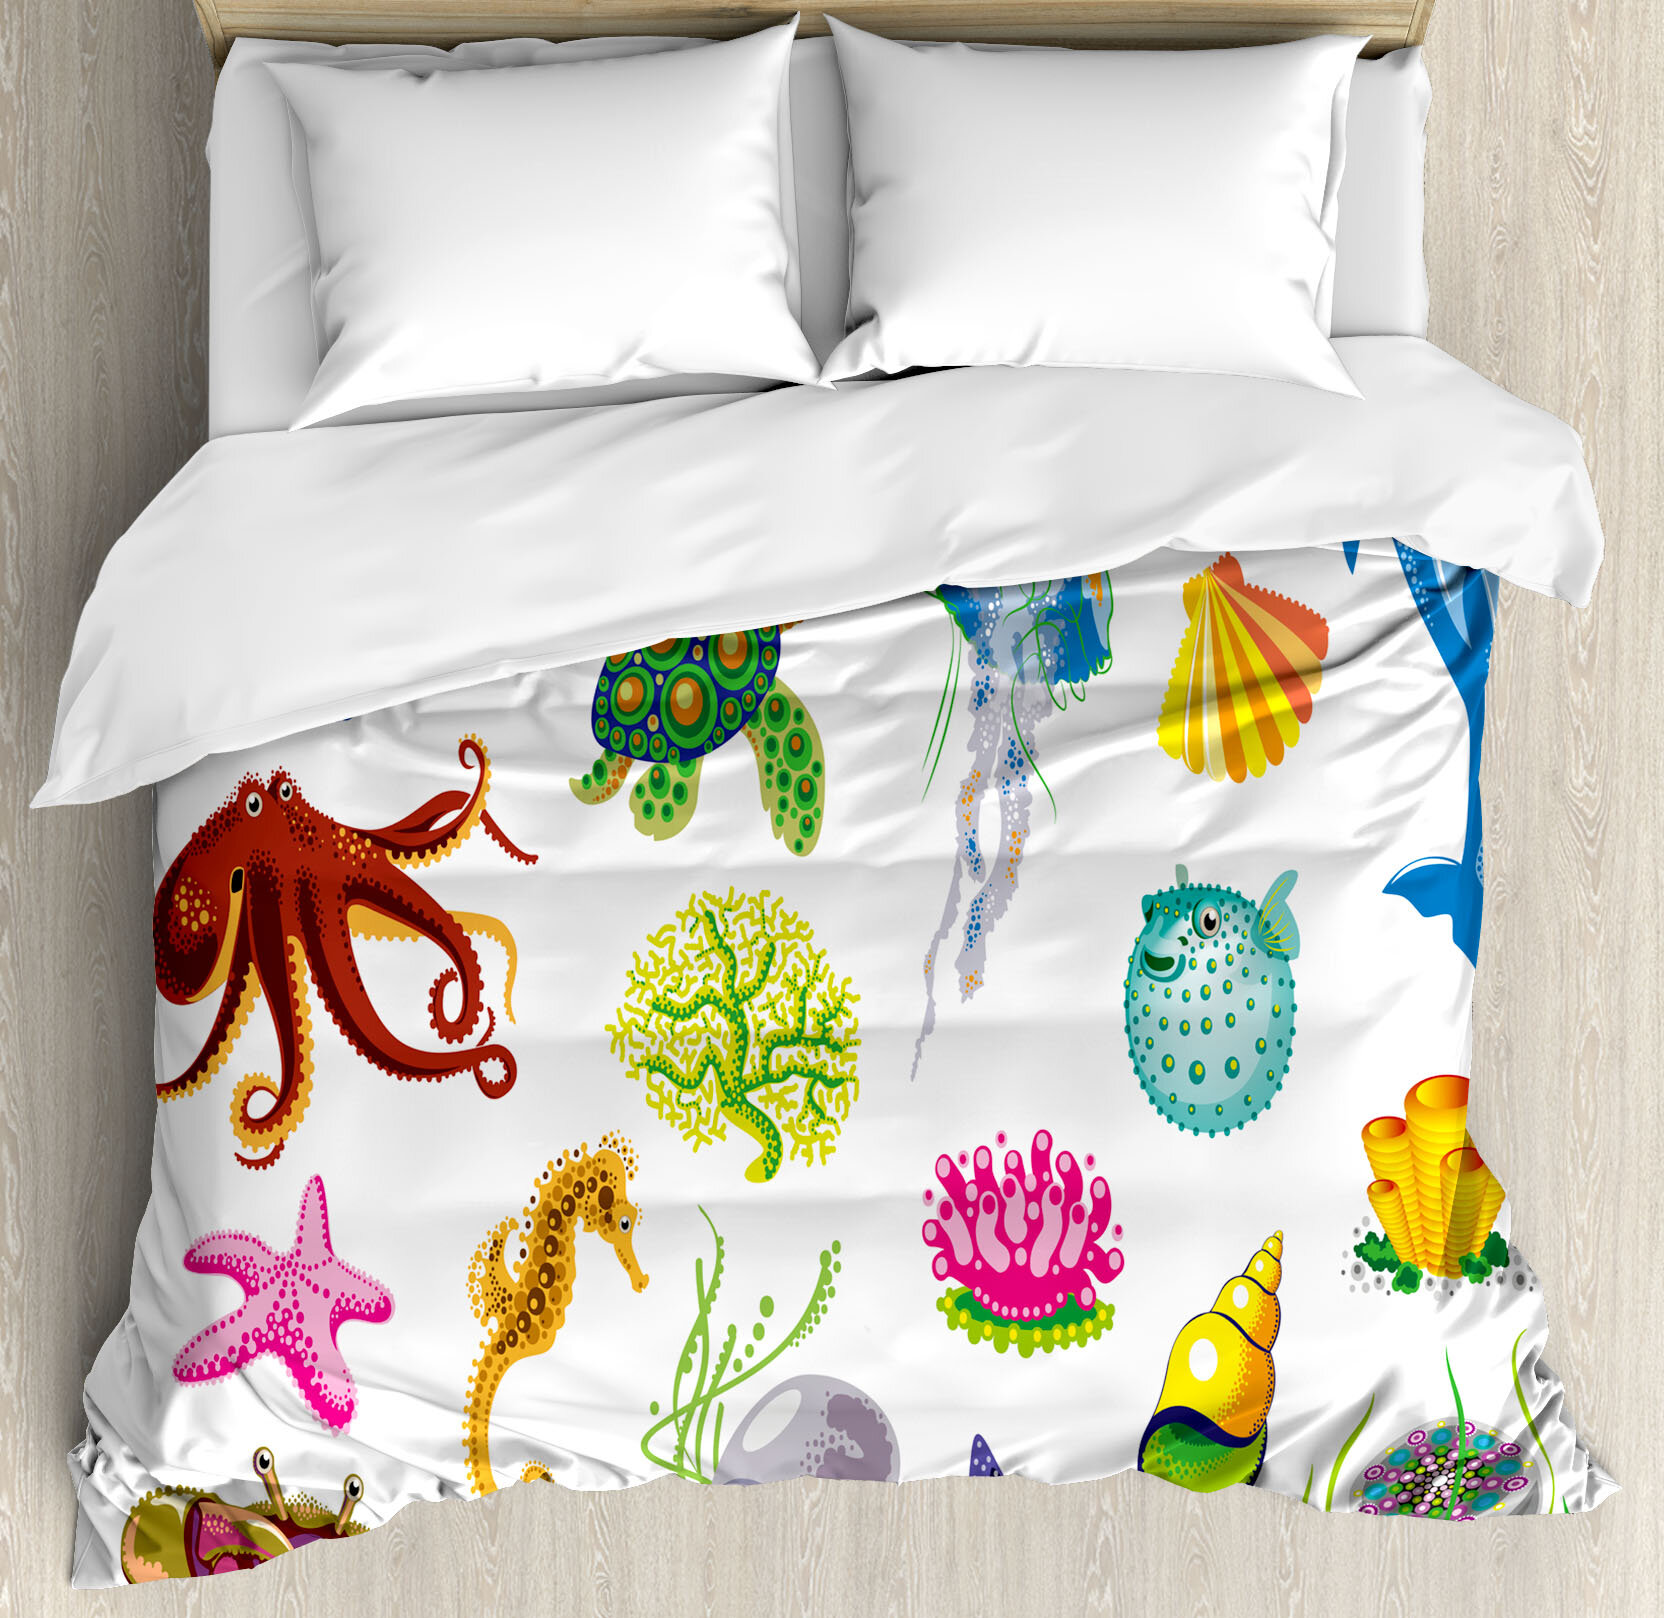 East Urban Home Barwen Marine Sea Animals Octopus Dolphin Shells Stingray Crab Turtle Jellyfish Wildlife Graphic Duvet Cover Set Wayfair